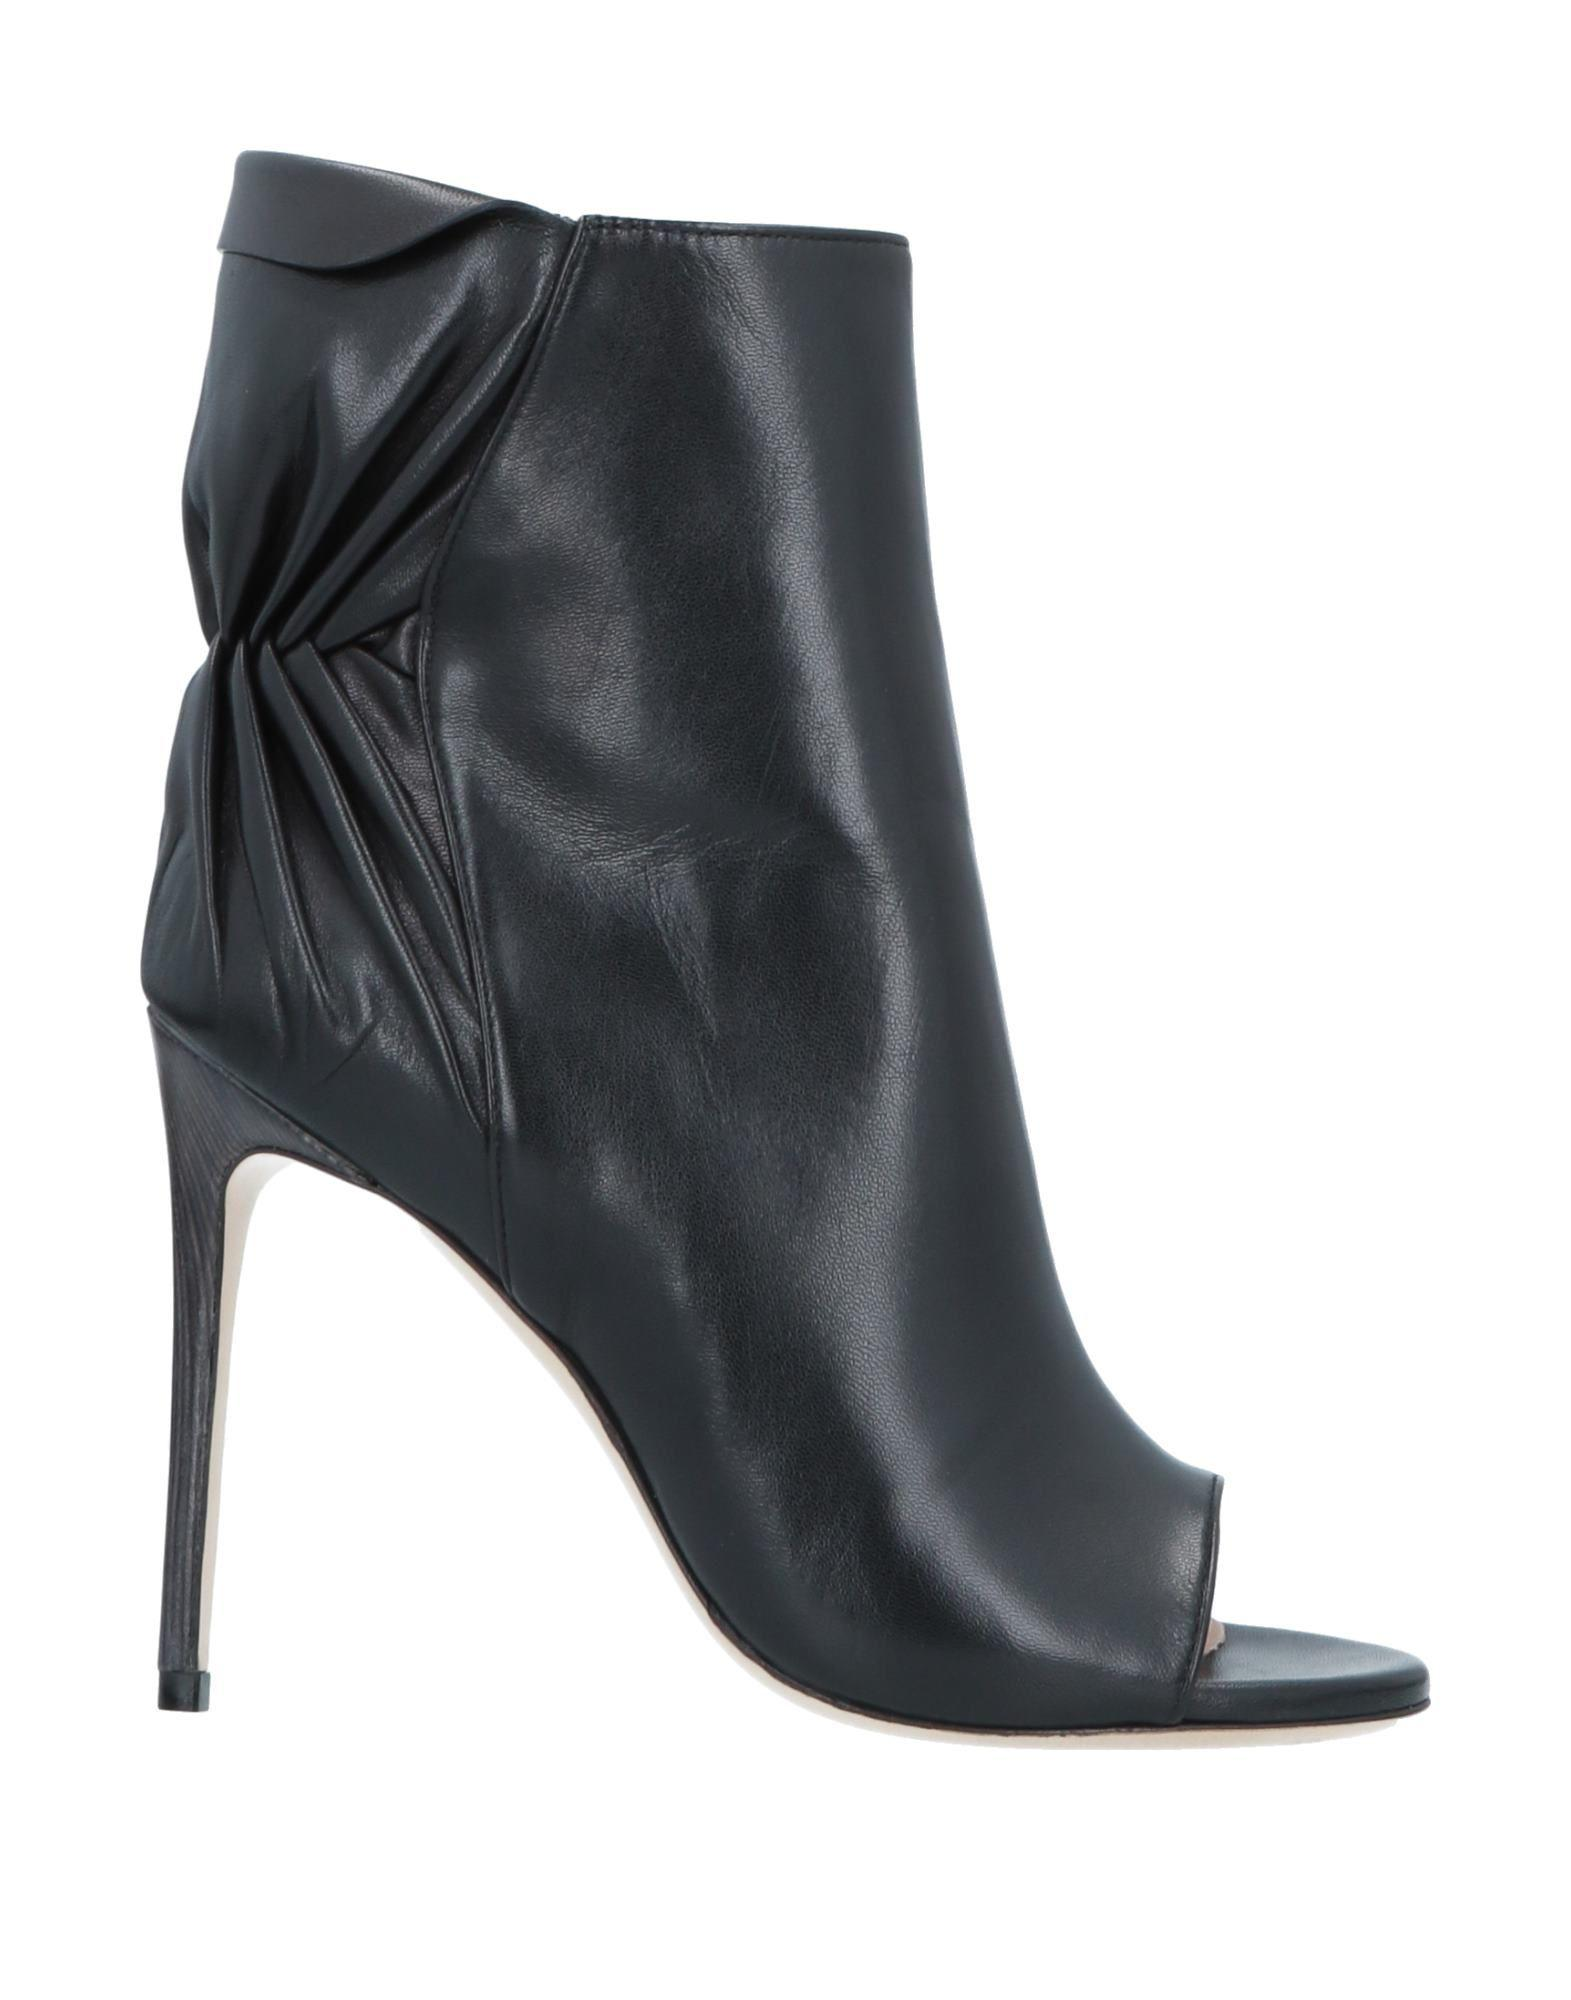 Boots in Castagna Aldo Ankle Lyst Black wFxn71BOq